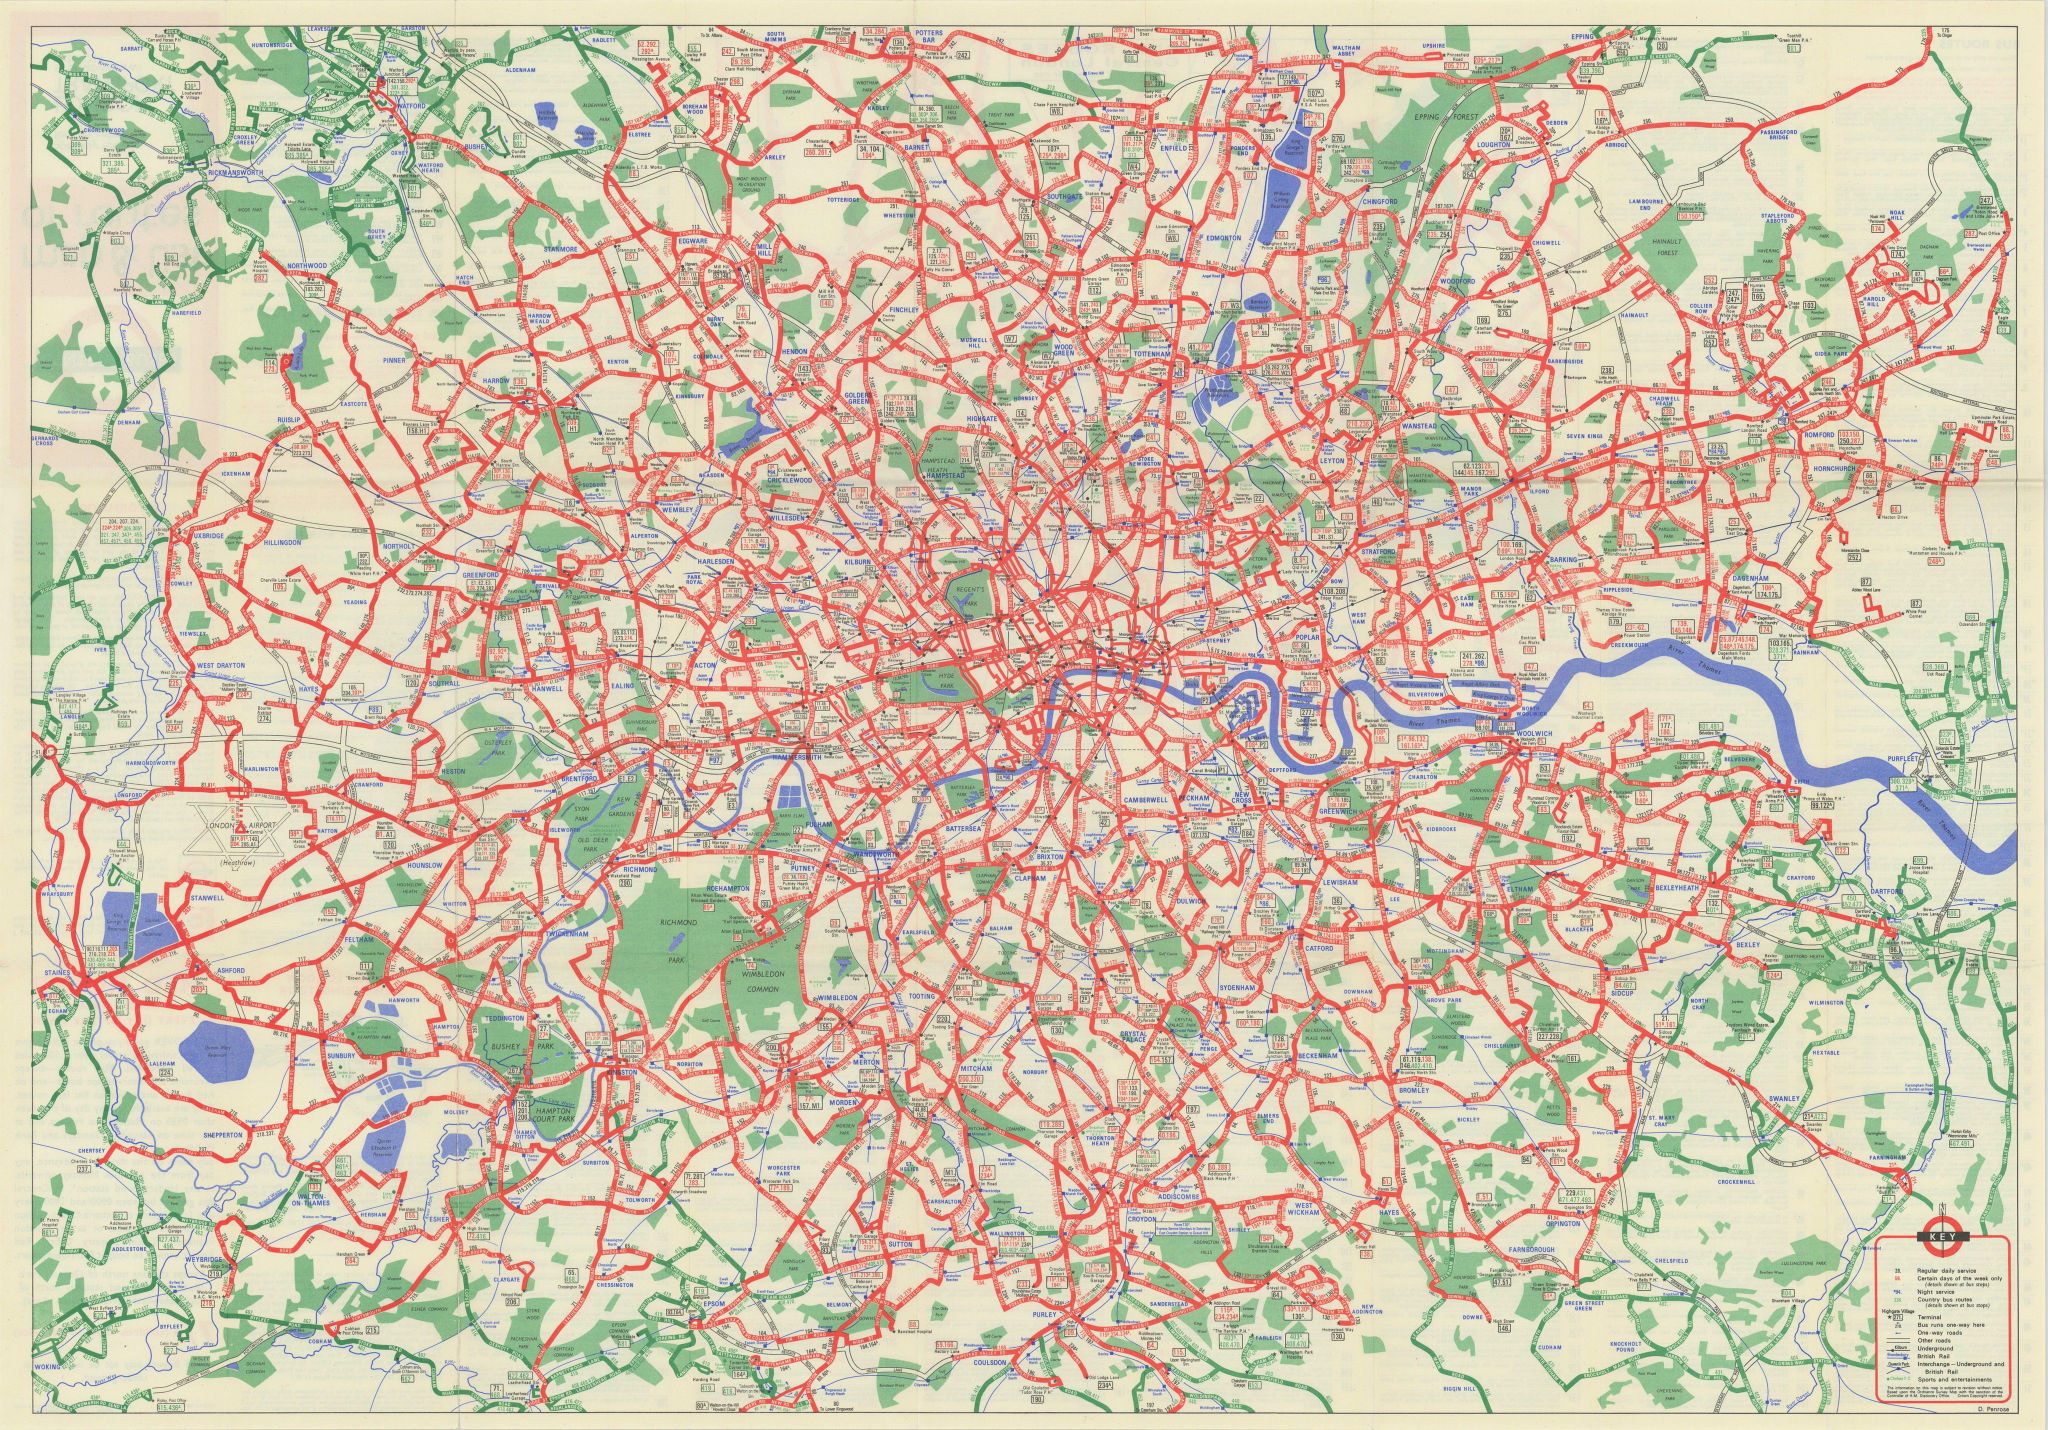 London Transport Central Buses map & list of routes. PENROSE #1 1969 old